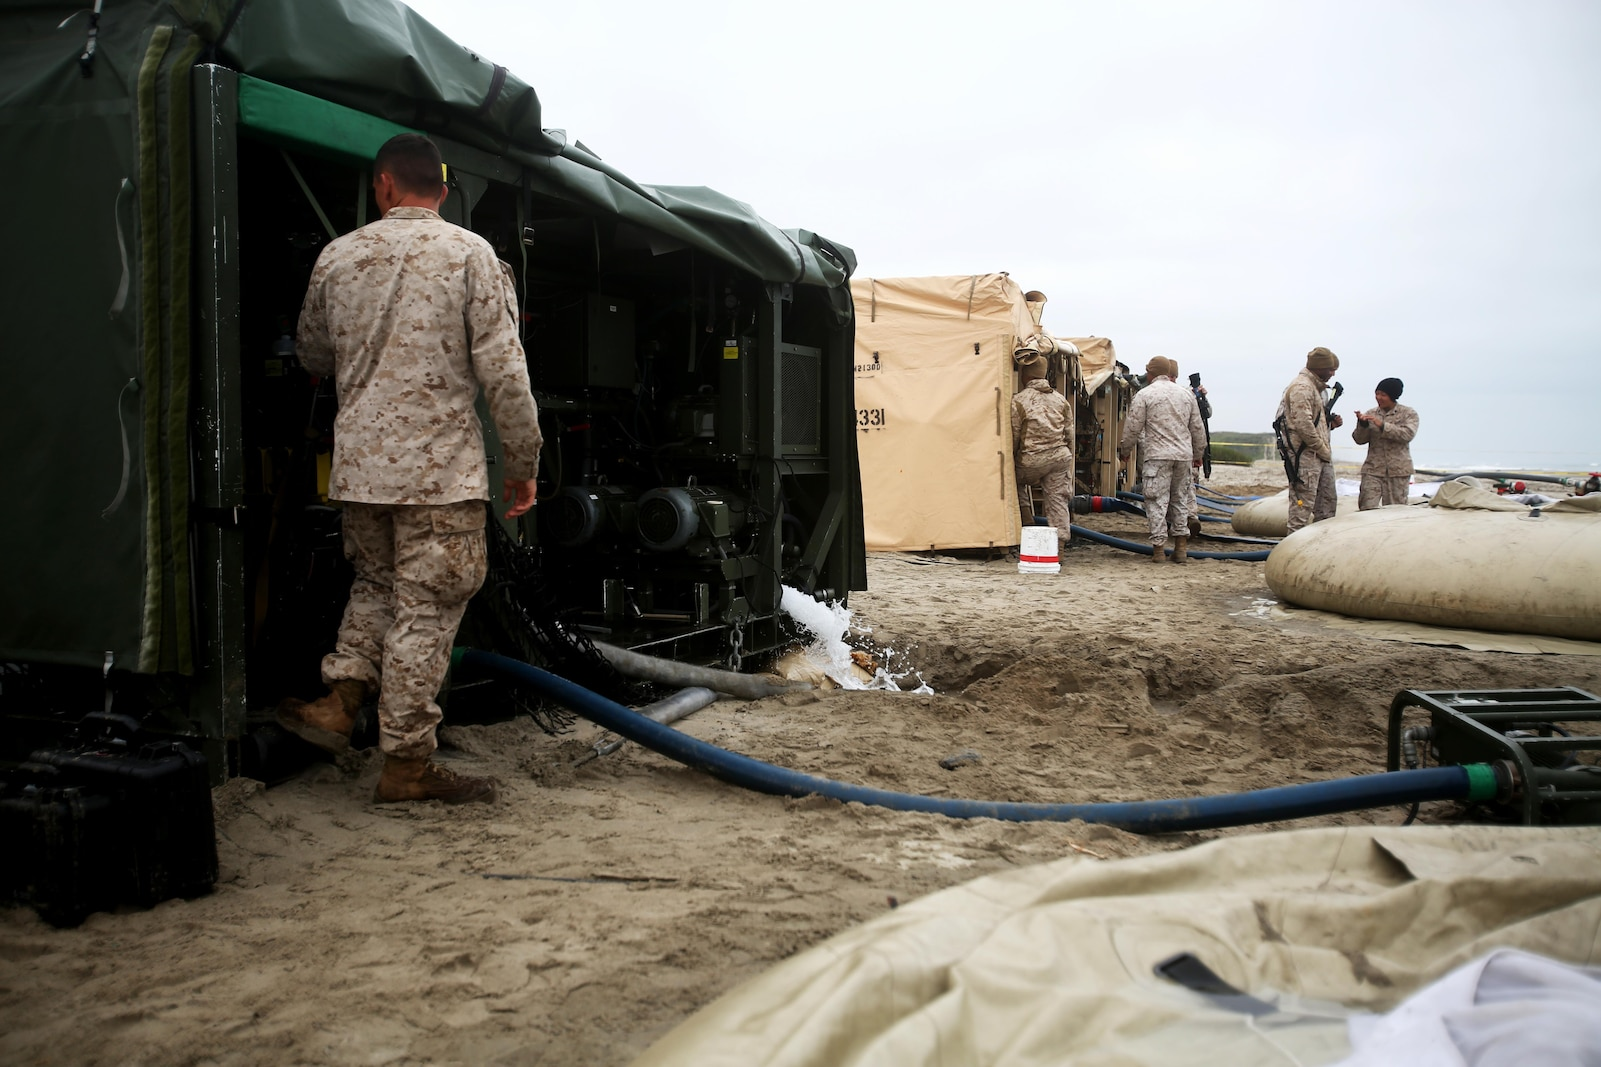 Marines with Utilities Platoon, Headquarters and Support Company, 7th Engineer Support Battalion, 1st Marine Logistics Group, operate four tactical water purification systems during a utilities exercise at Red Beach aboard Camp Pendleton, Calif., March 21, 2016. Utilities Platoon conducted an eight-day field exercise which focused on their ability to provide clean water and stable power to a unit located in an environment without standard utility resources. (U.S. Marine Corps photo by Cpl. Carson Gramley/released)